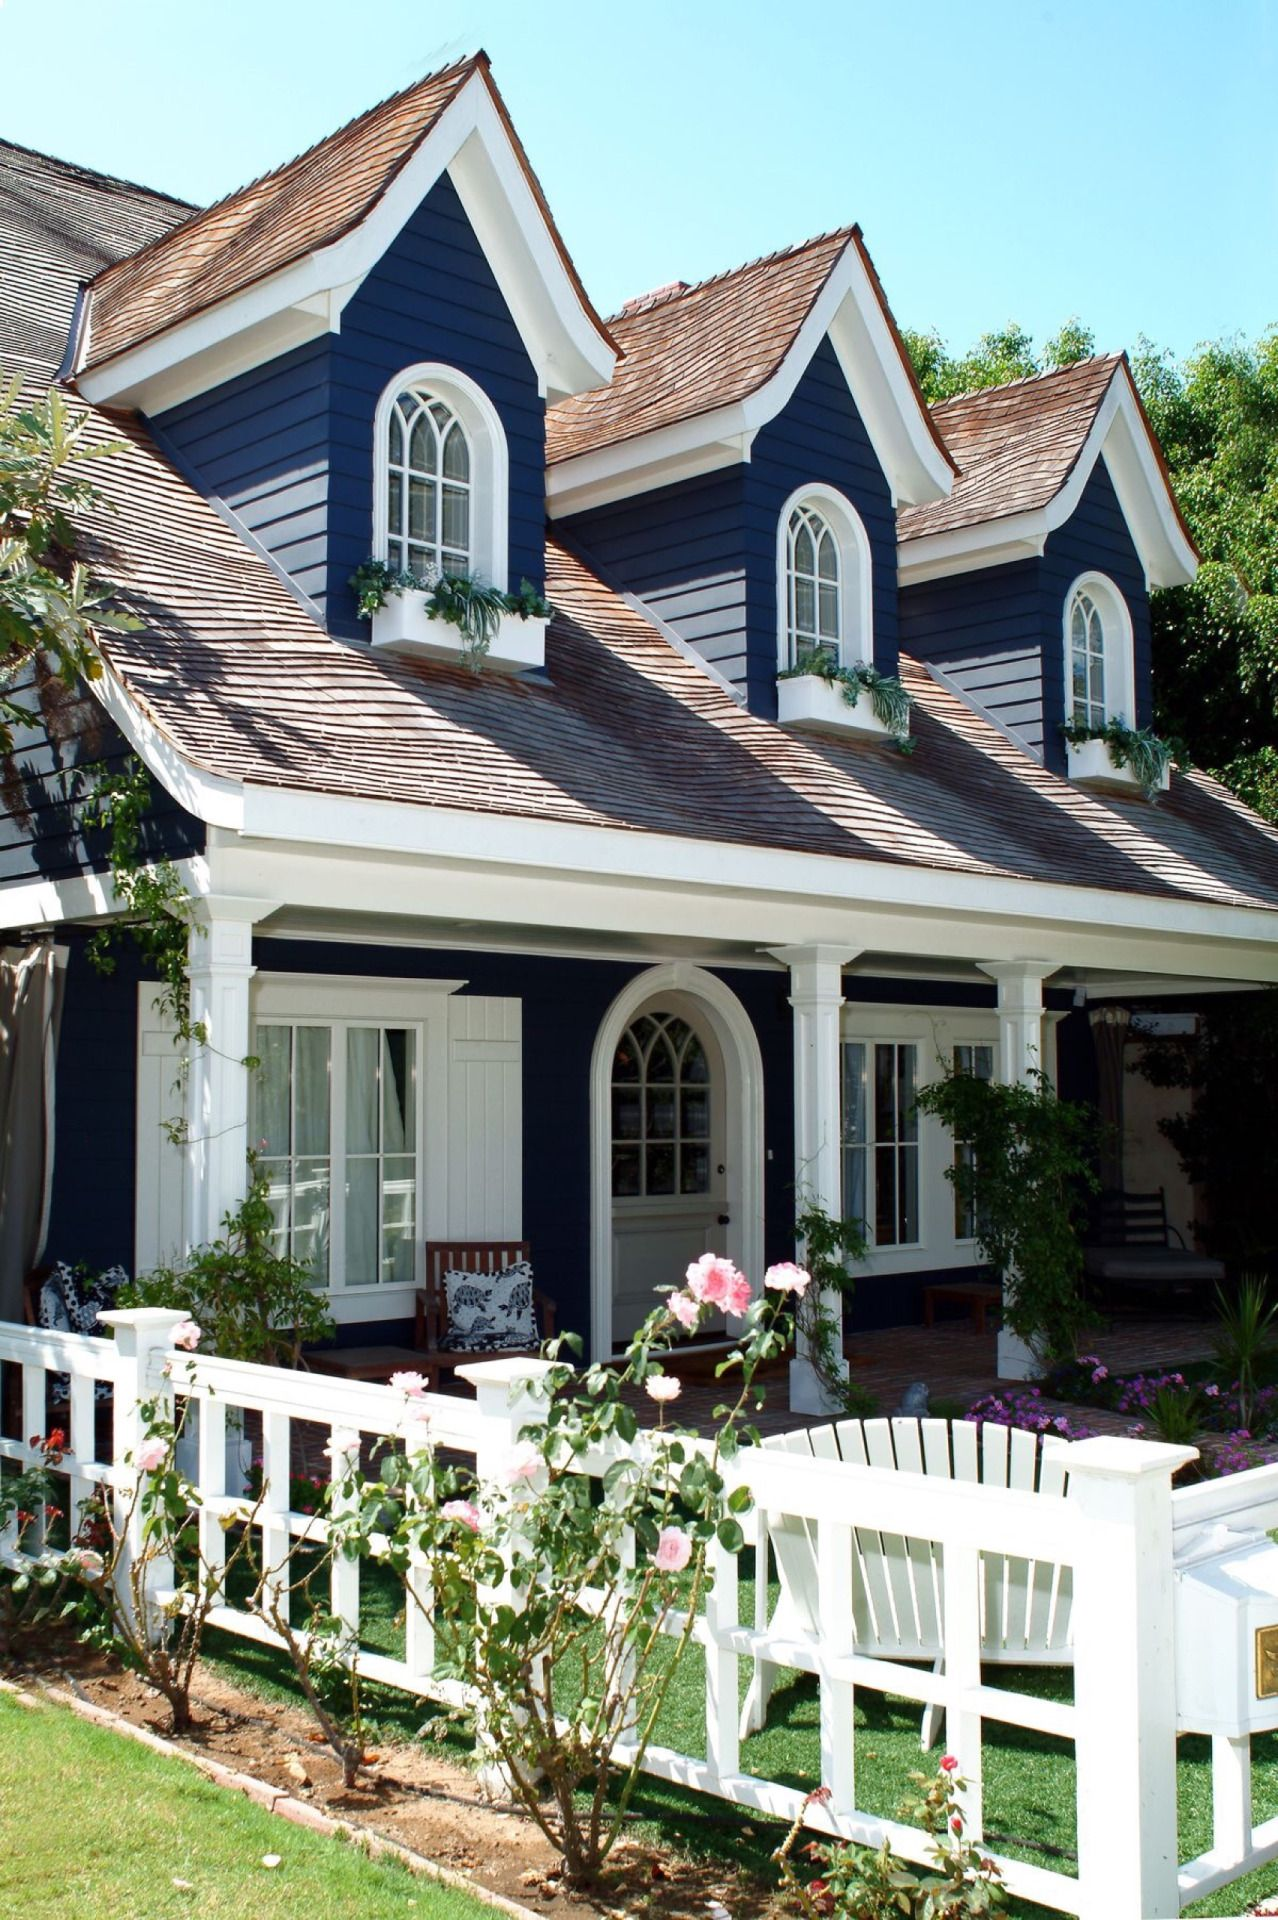 Why You Should Trim Your Home in White Houses I like